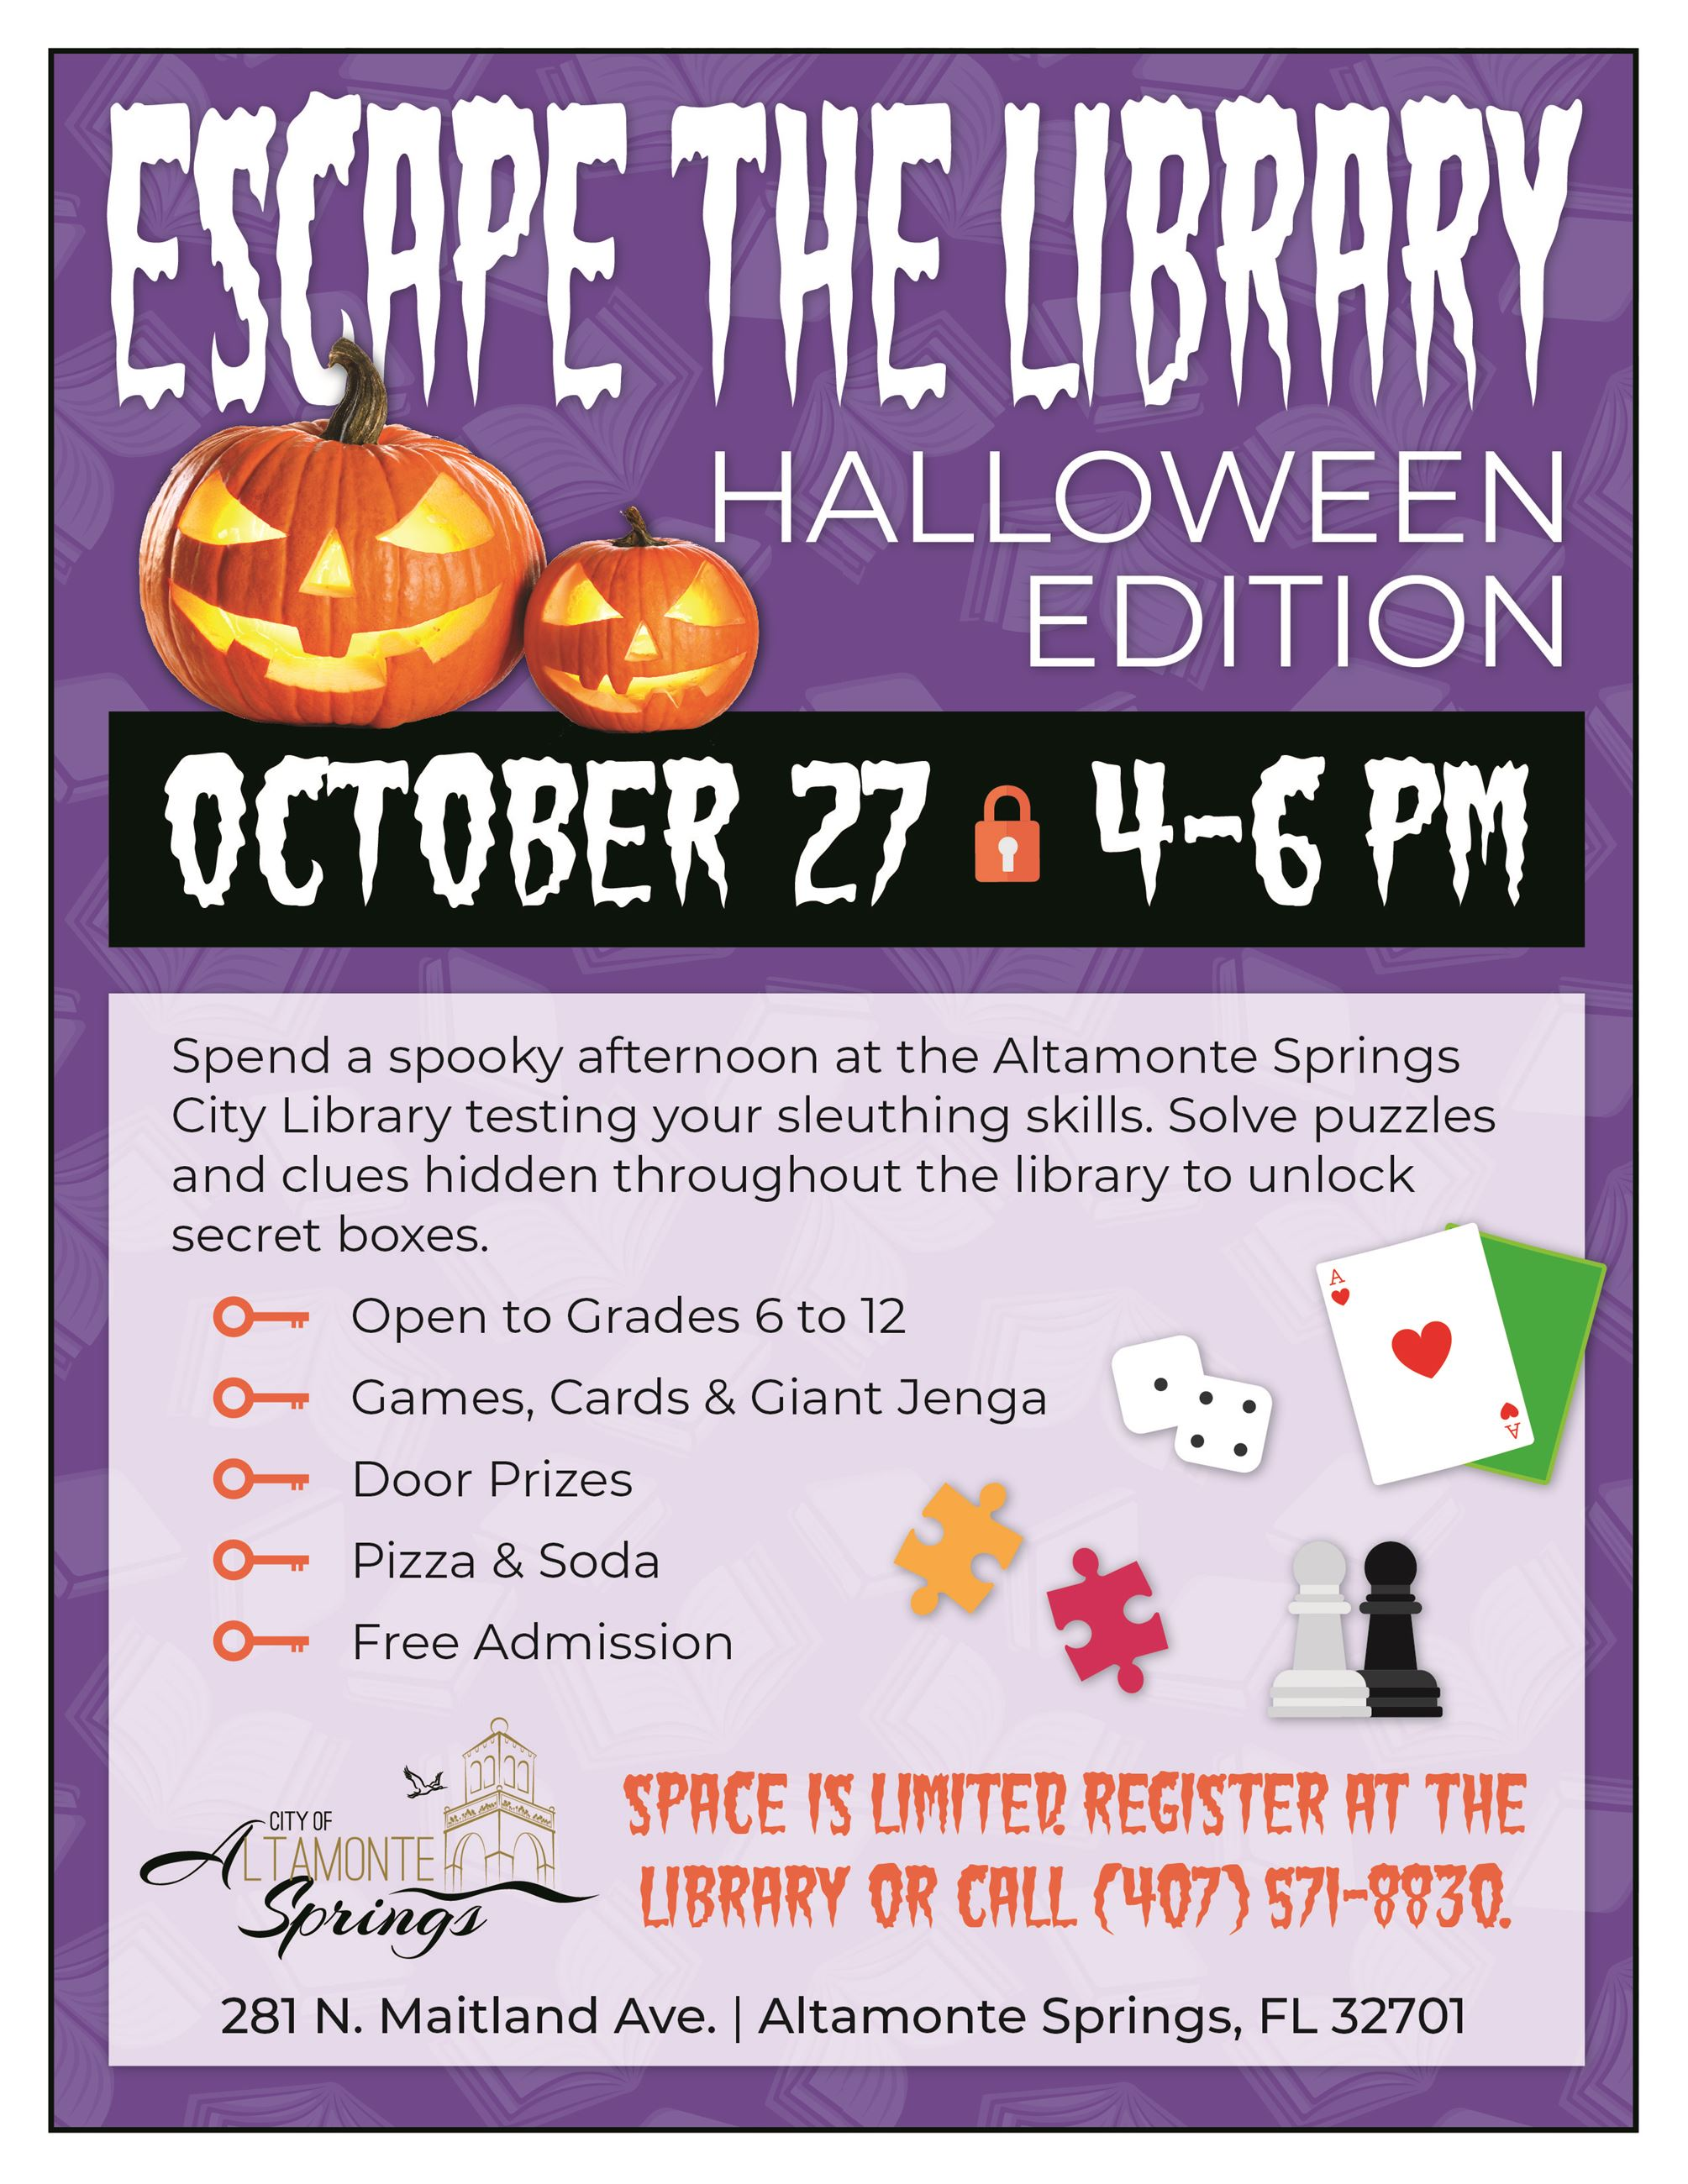 Escape the Library Halloween Flyer